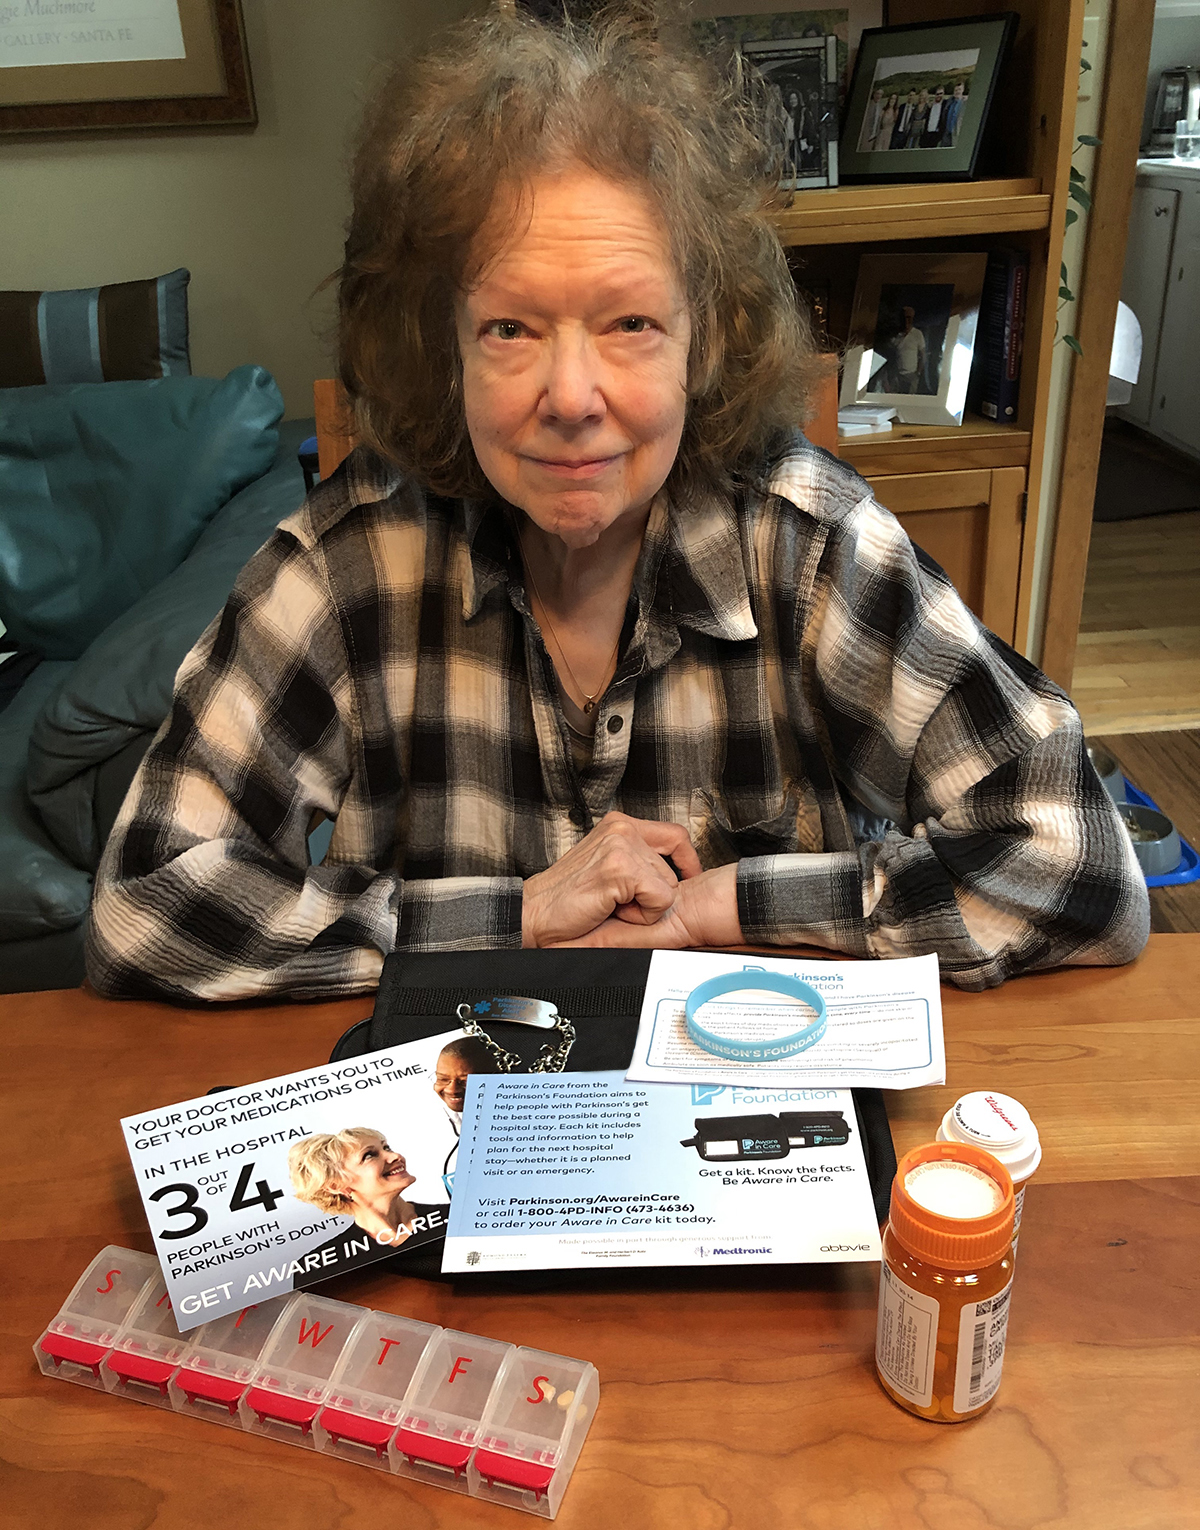 Andrée Jannette sitting at a table with a aware in care kit including medications and a pill bottle